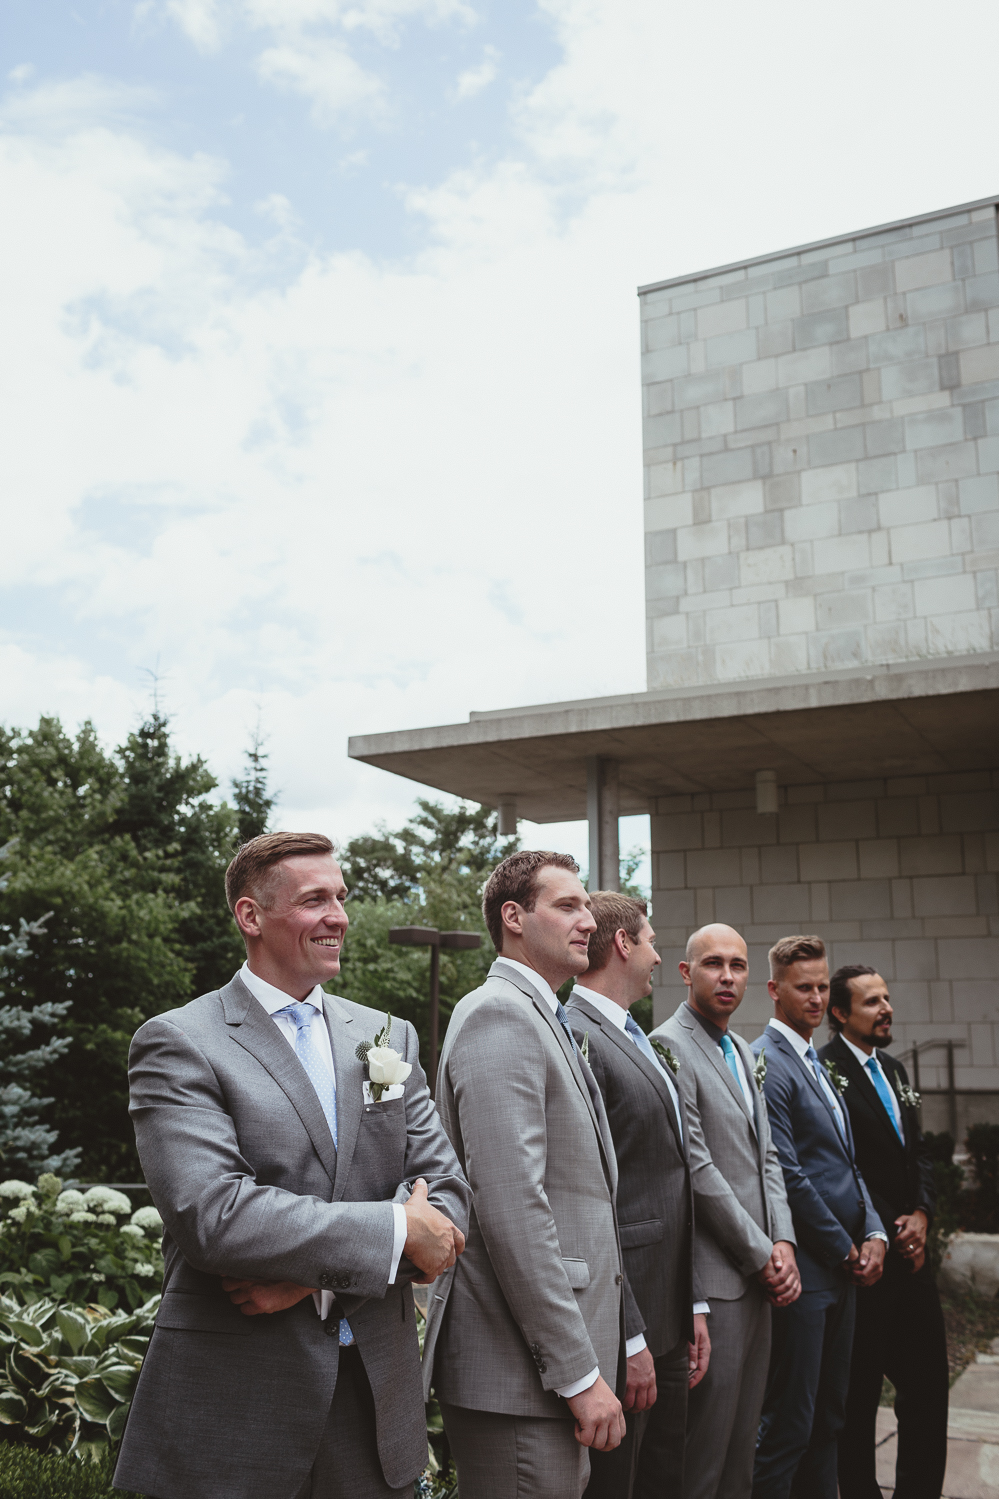 toronto wedding photographers 6.jpg